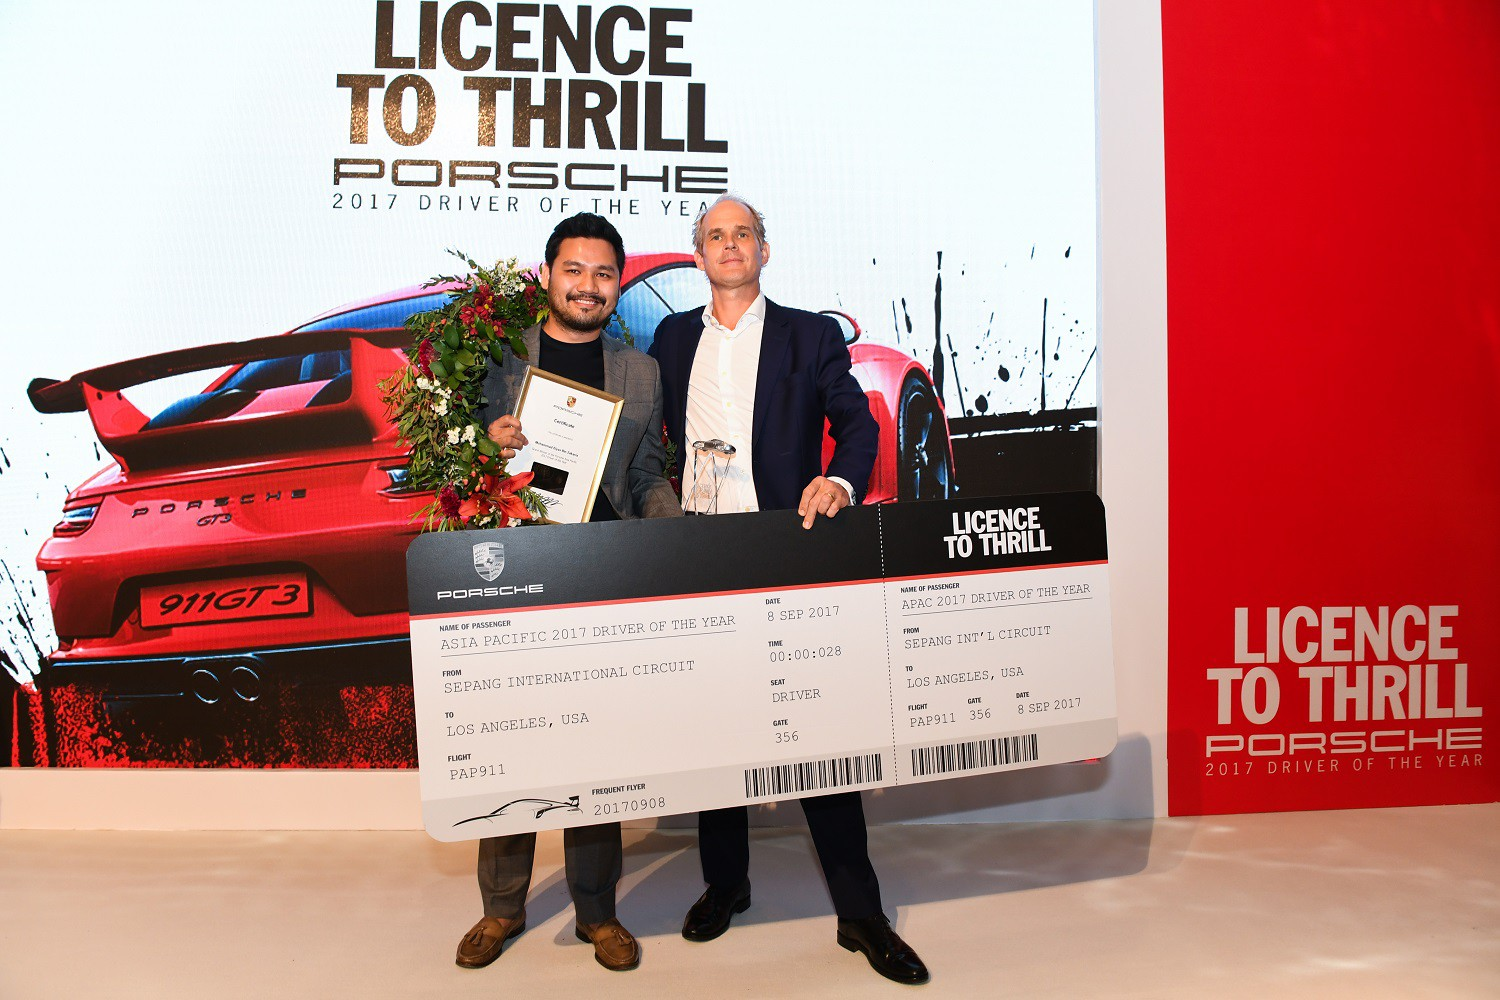 license-to-thrill